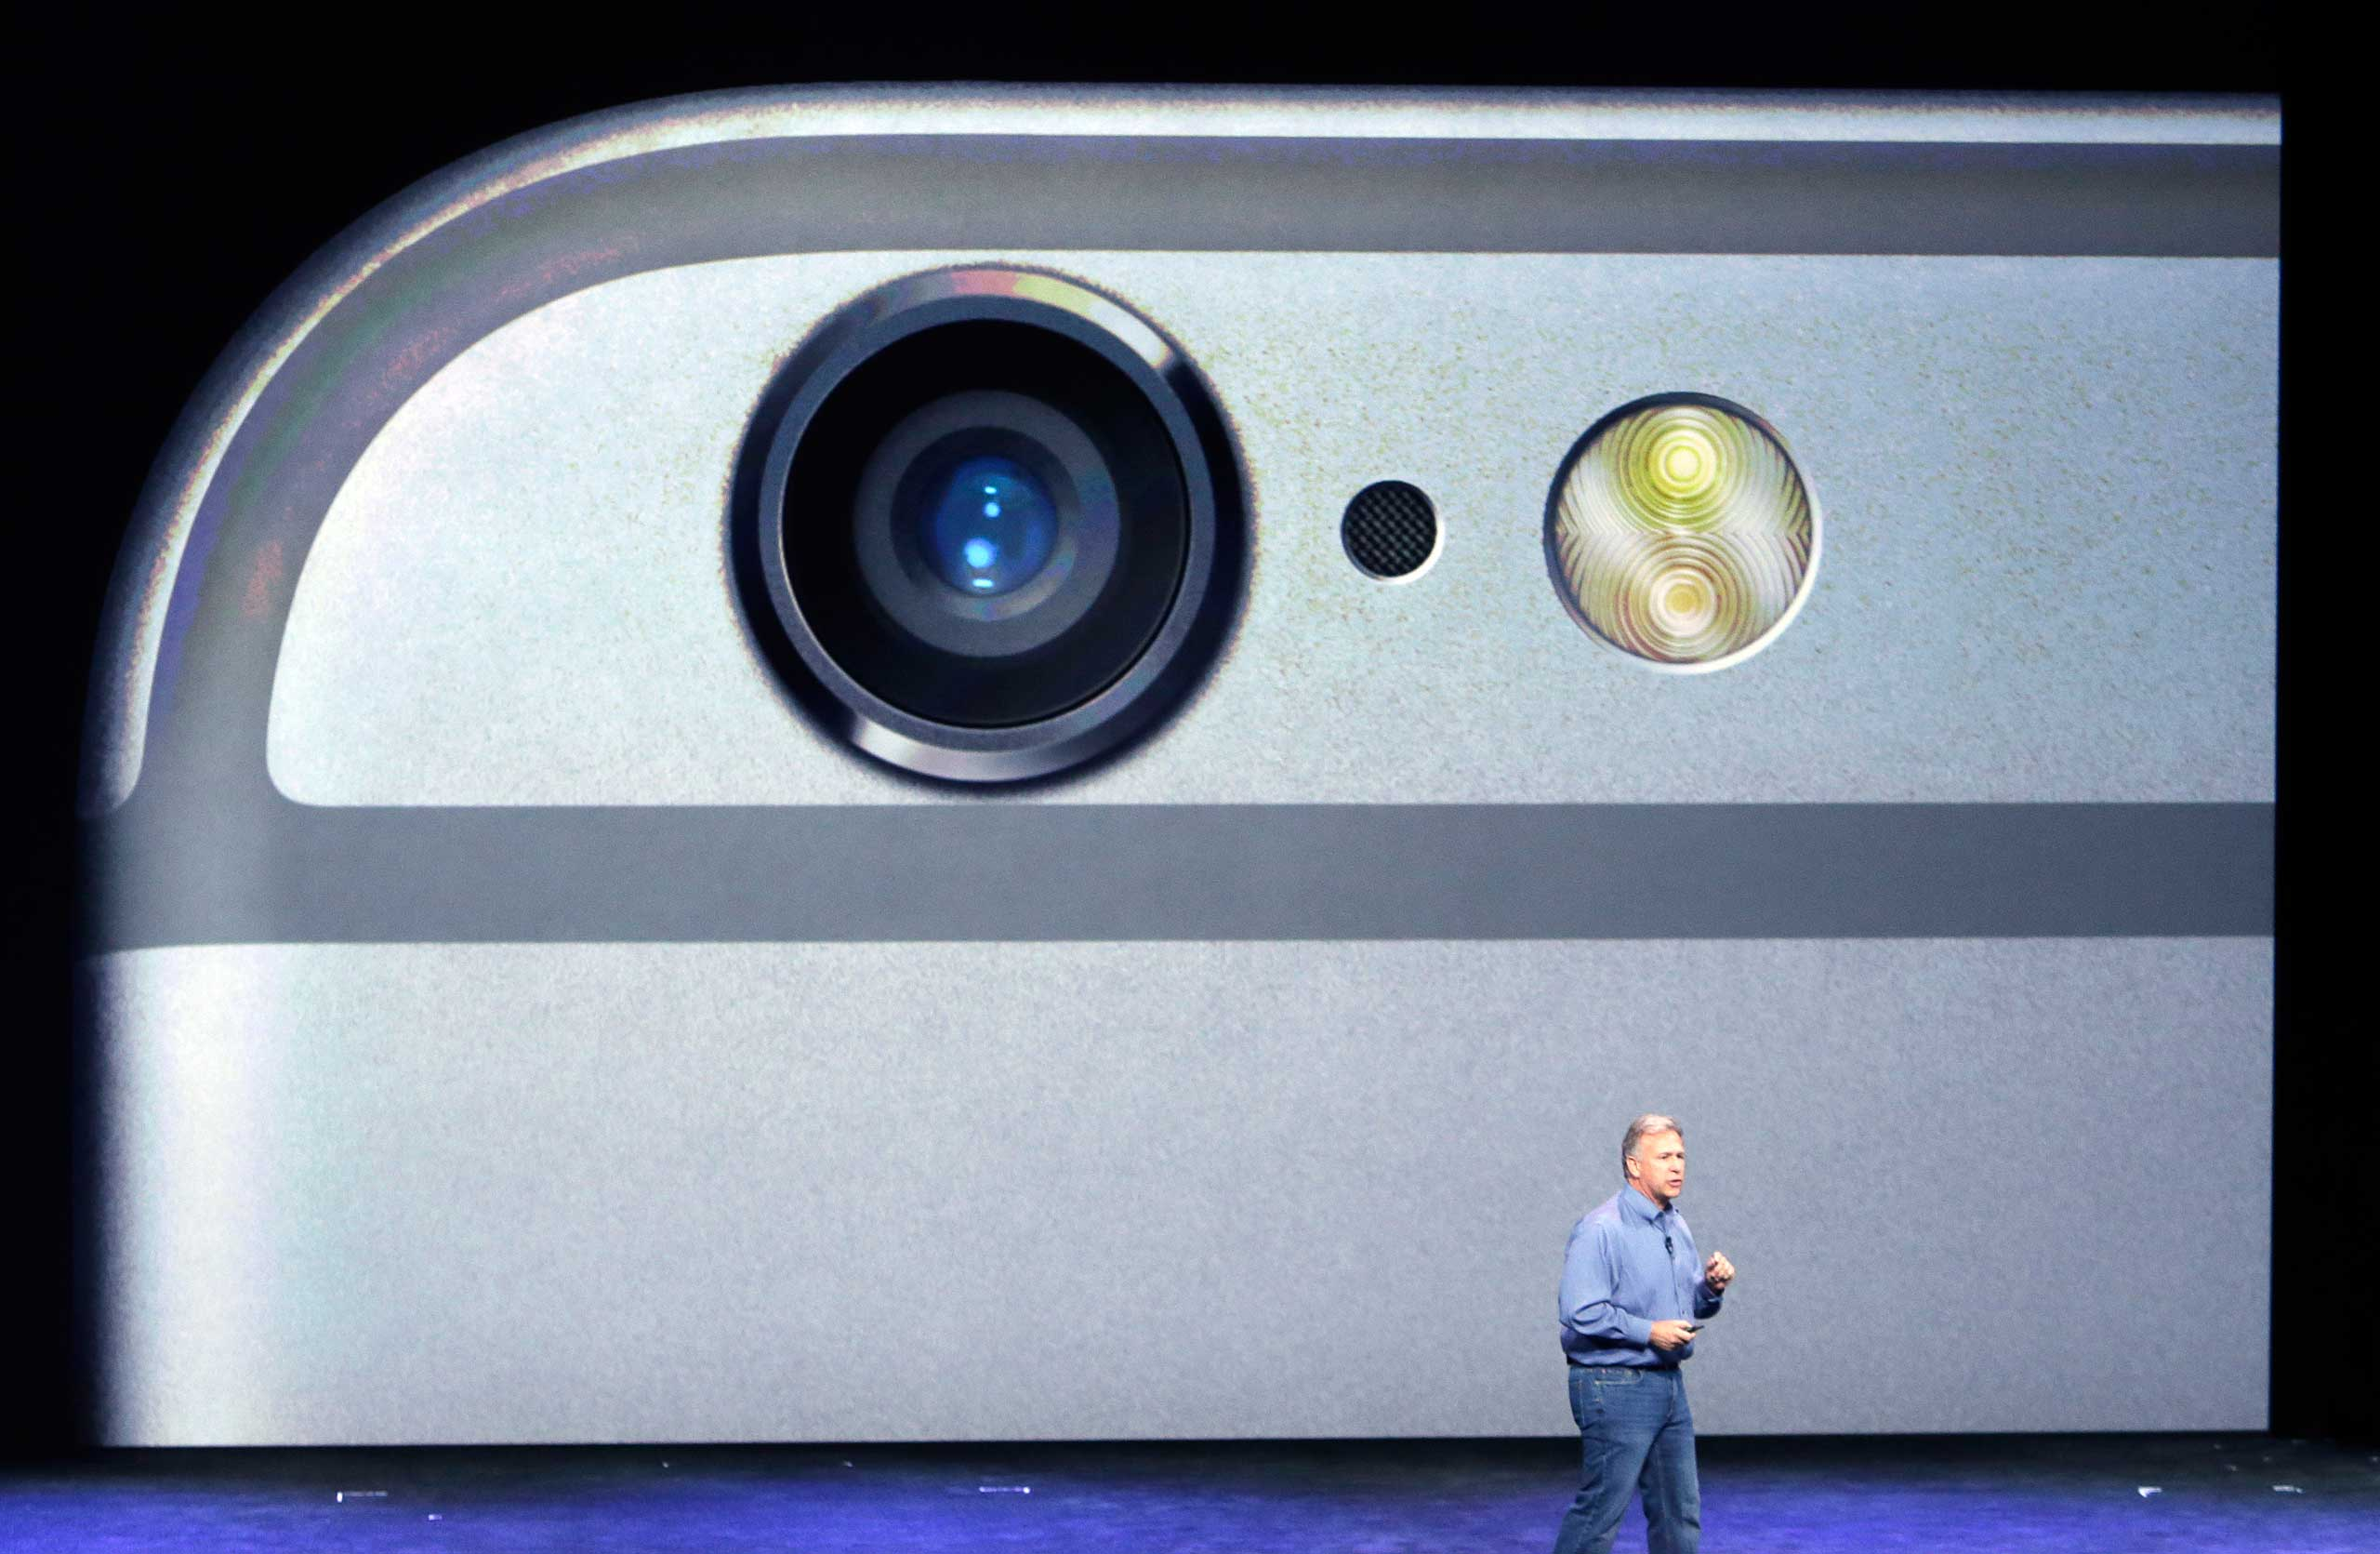 Phil Schiller, Apple's senior vice president of worldwide product marketing, discusses the camera features on the new iPhone 6 and iPhone 6 plus on Sept. 9, 2014, in Cupertino, Calif.